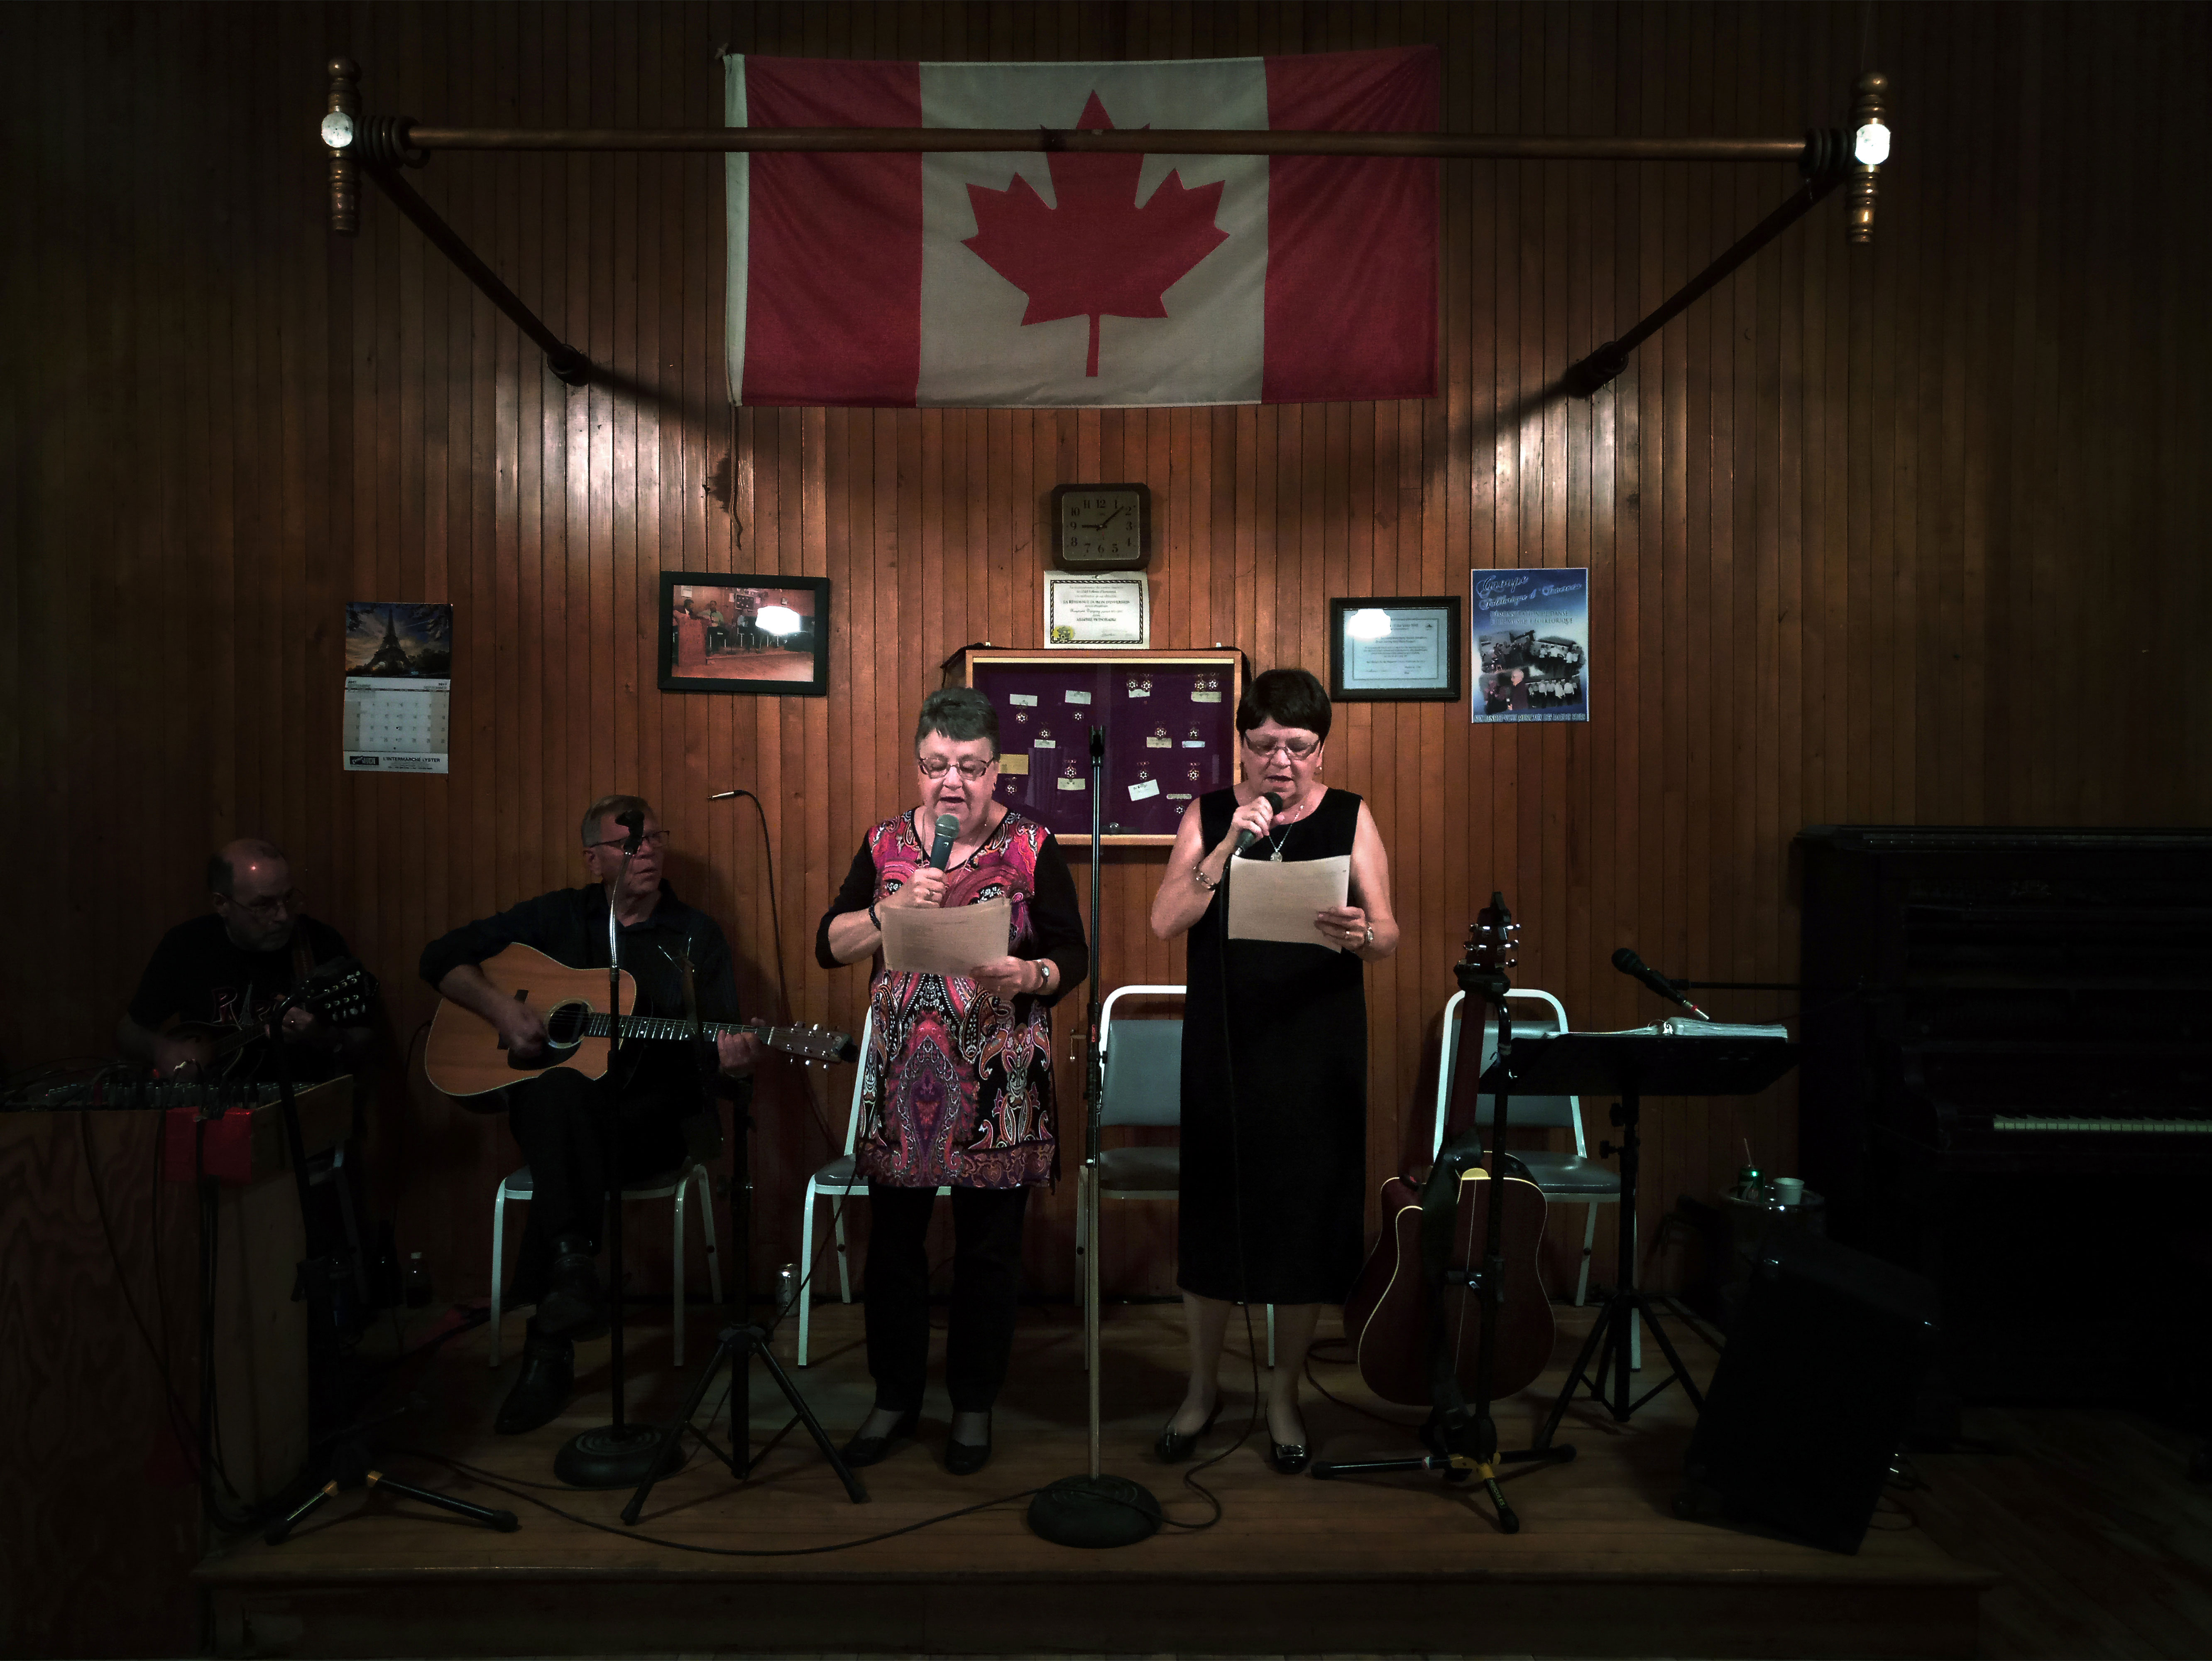 Every Friday evening folks singers and dancers gather in the Odd Fellows hall. Their repertoire includes Scottish, Irish and French melodies.